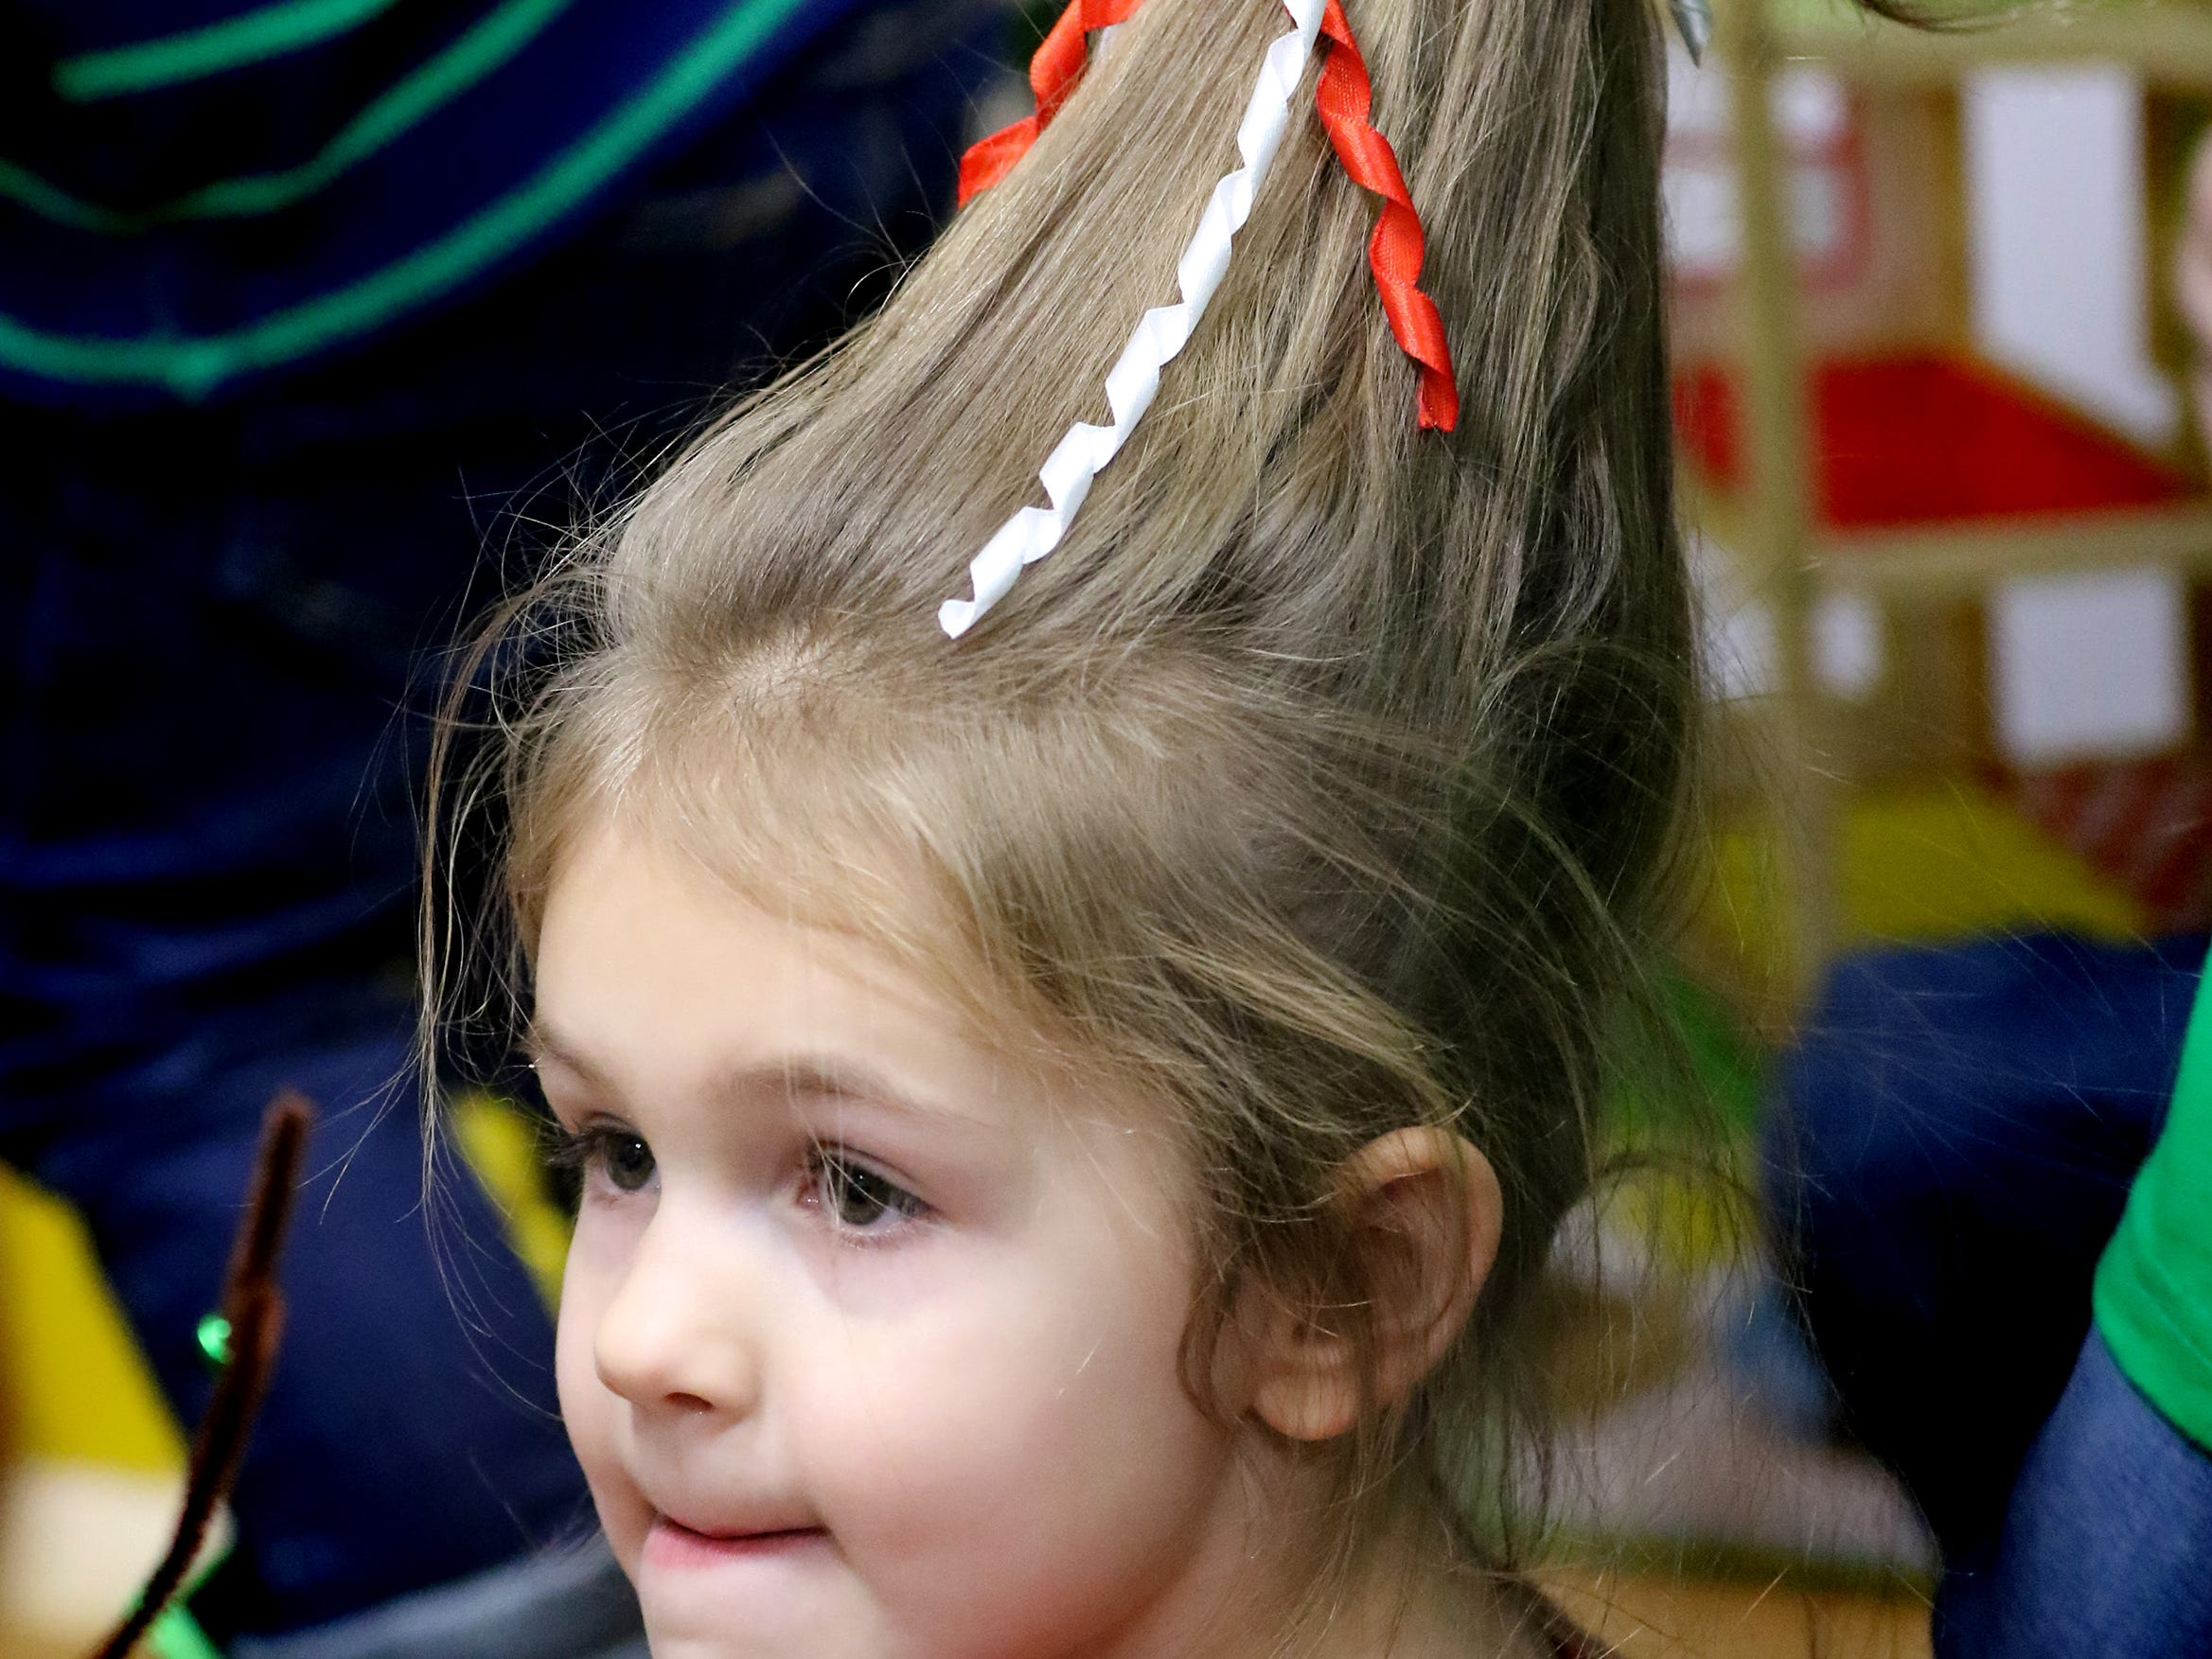 Piper Philleo, 4, sports a Whoville hairdo for Grinchmas in Pewaukee at Silly Willyz on Dec 6.